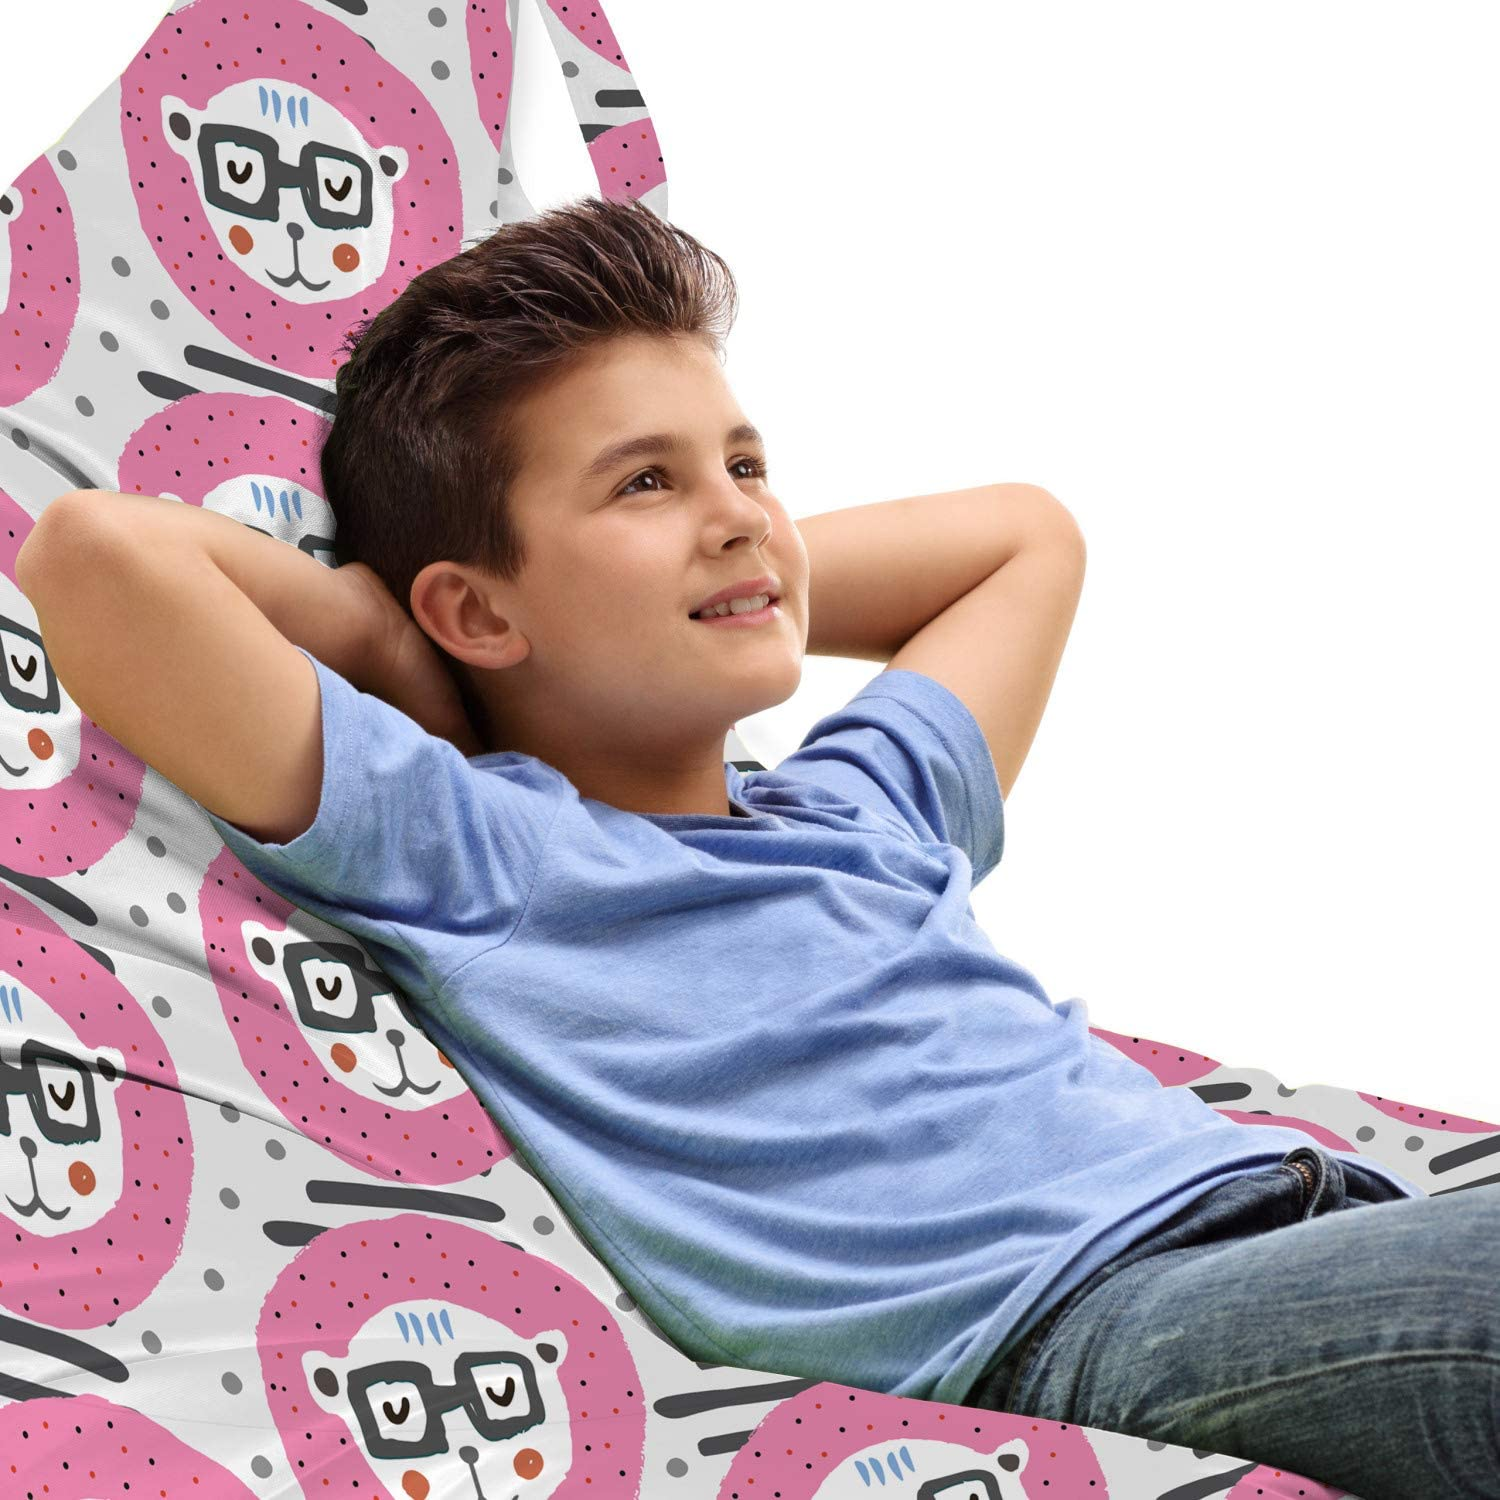 Lunarable Cartoon Lounger Chair Bag Funny Heads New mail order Po in wholesale Hear Lion